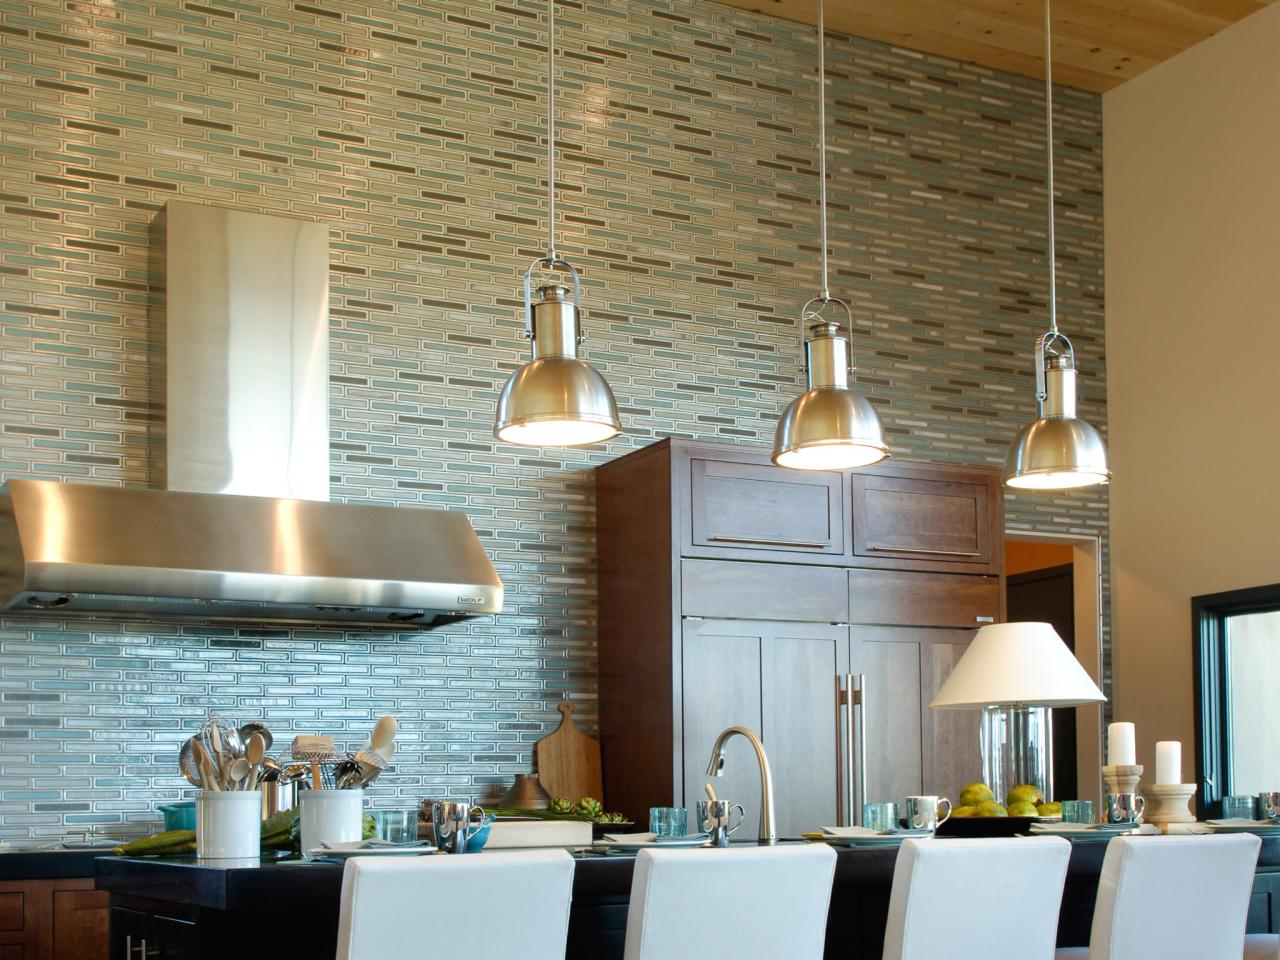 Kitchen Wall Tiles Ideas - emiliesbeauty.com -